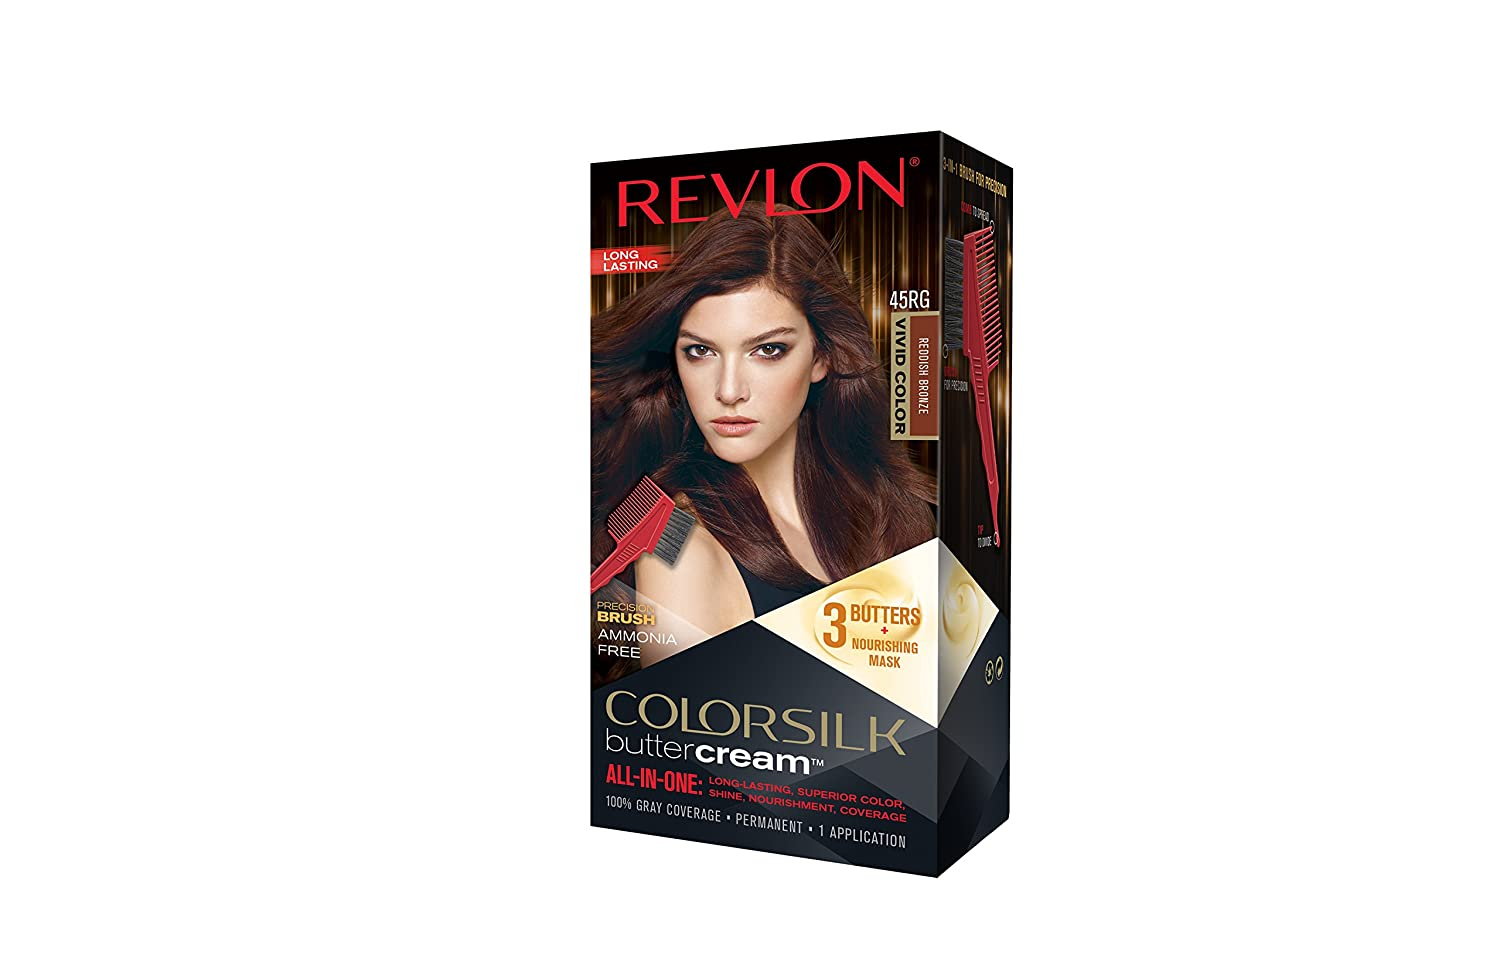 Revlon Colorsilk Buttercream Hair Dye, Vivid Reddish Bronze, Pack of 1